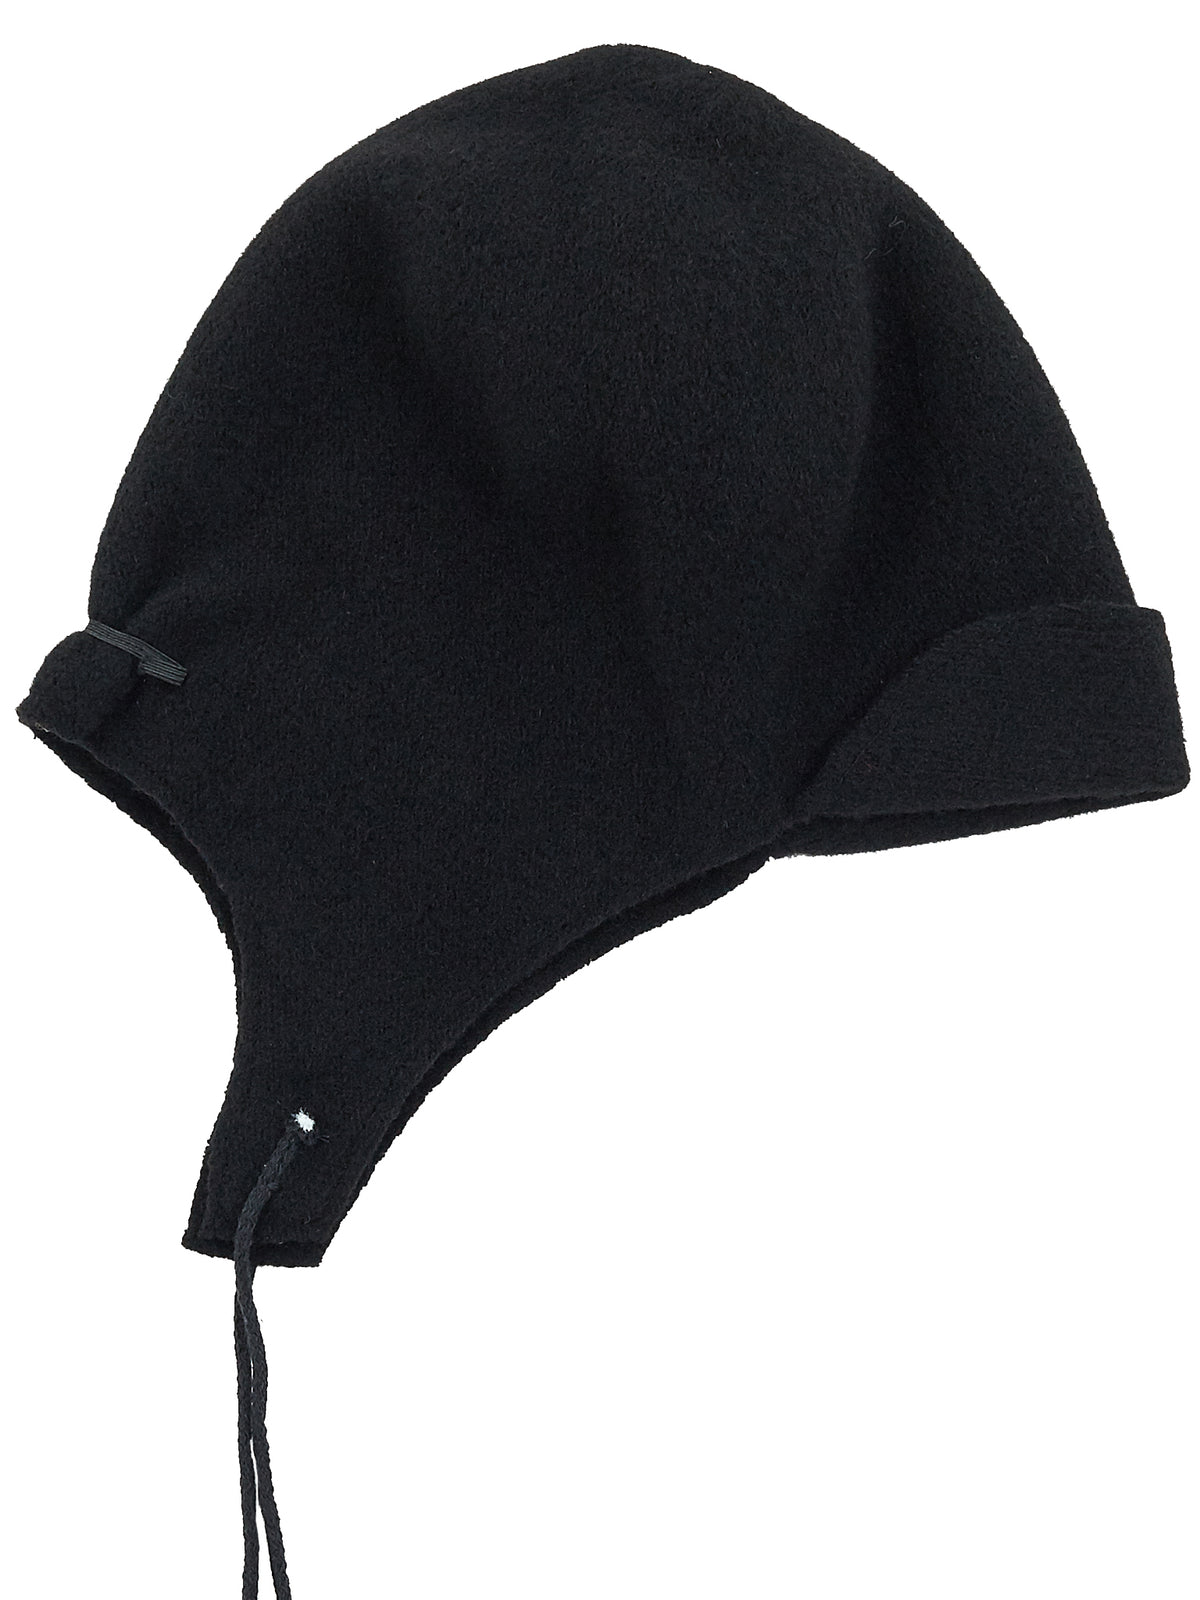 'Formula Uno' Cap (FORMULA-UNO-LIGHT-BLACK)